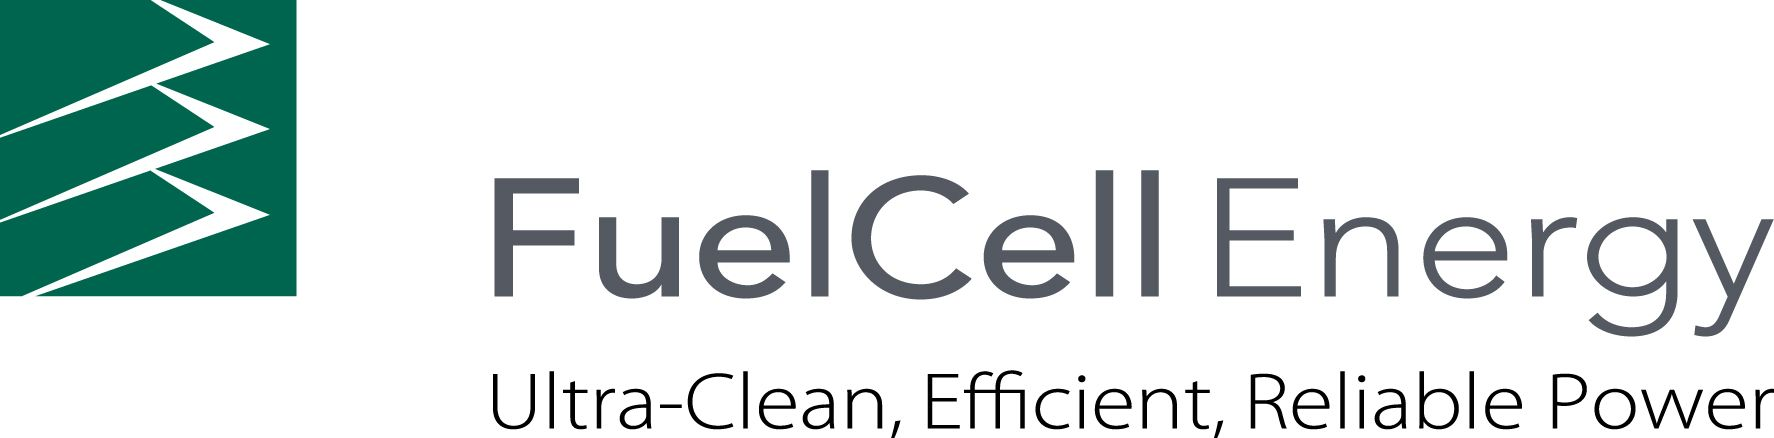 FuelCell Energy applauds Congressman Larson's and Senator Blumenthal's proposed legislation